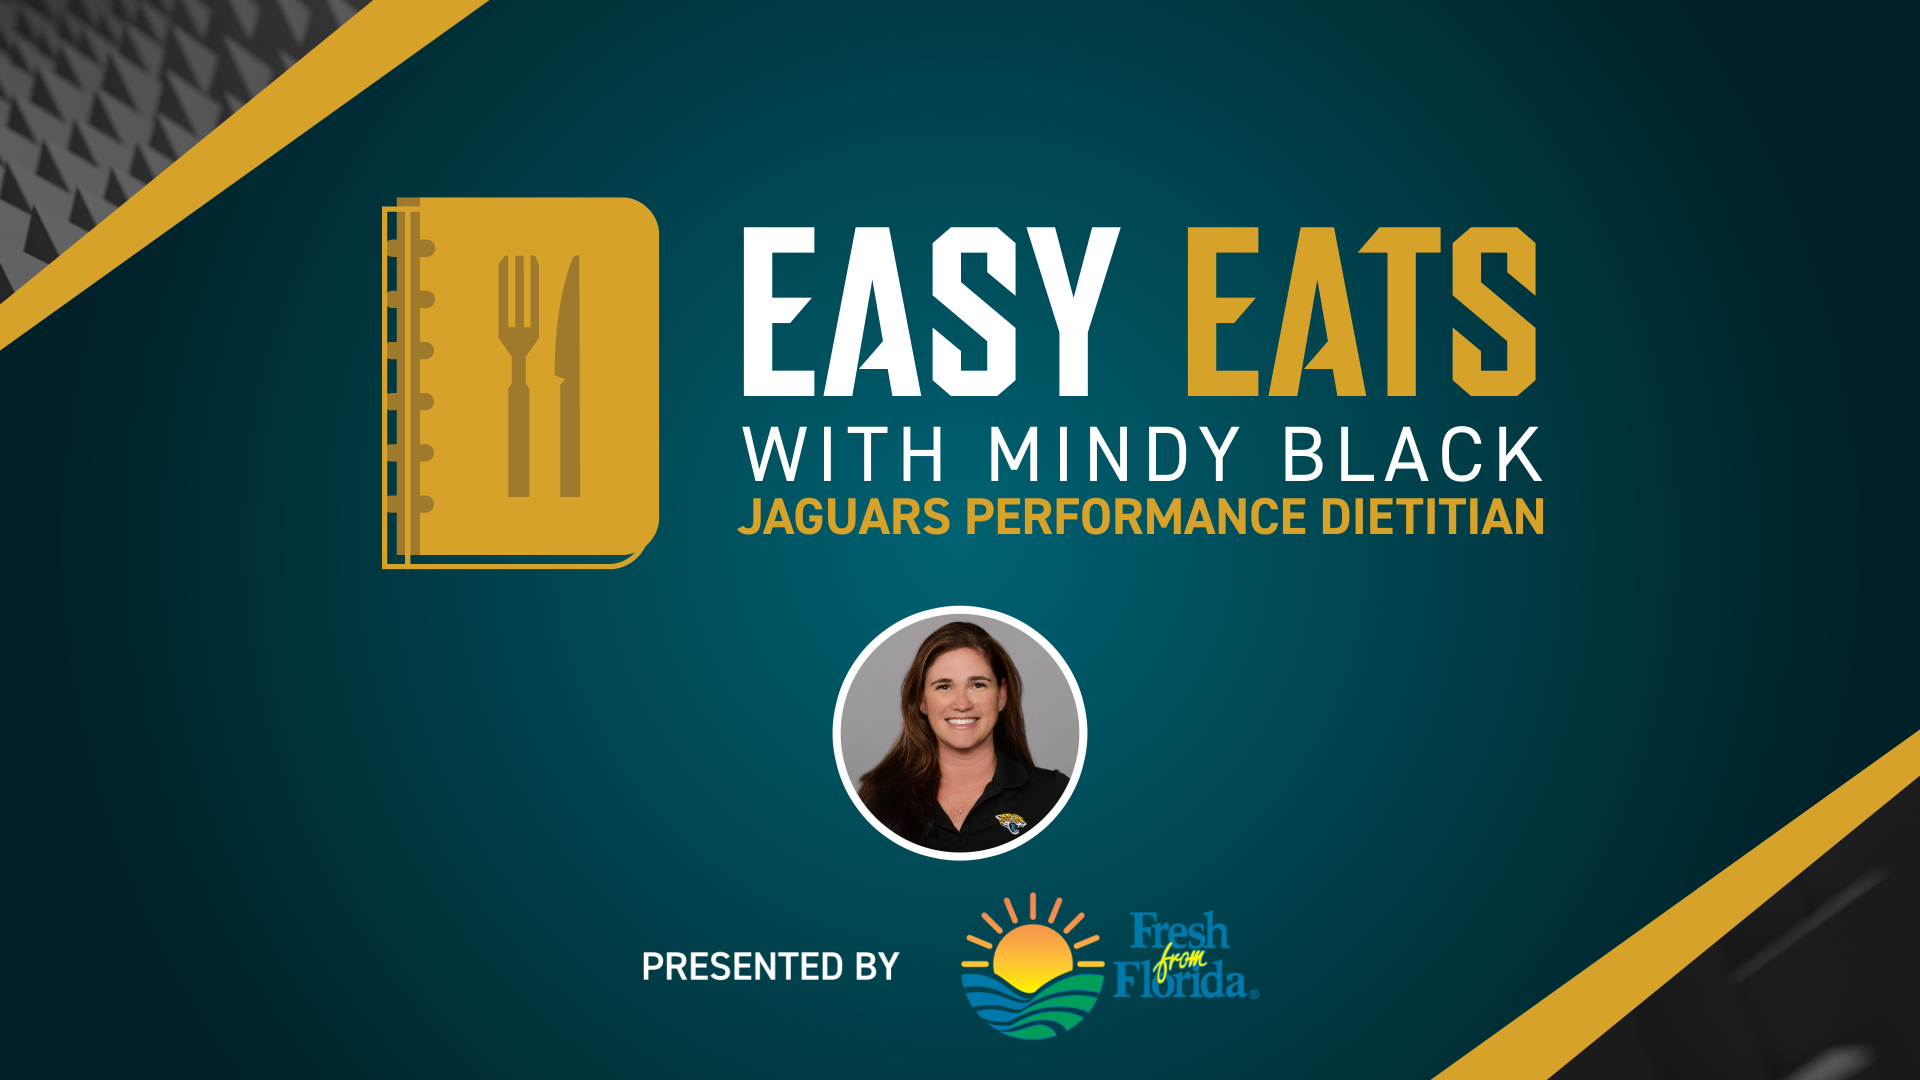 Easy Eats with Mindy Black